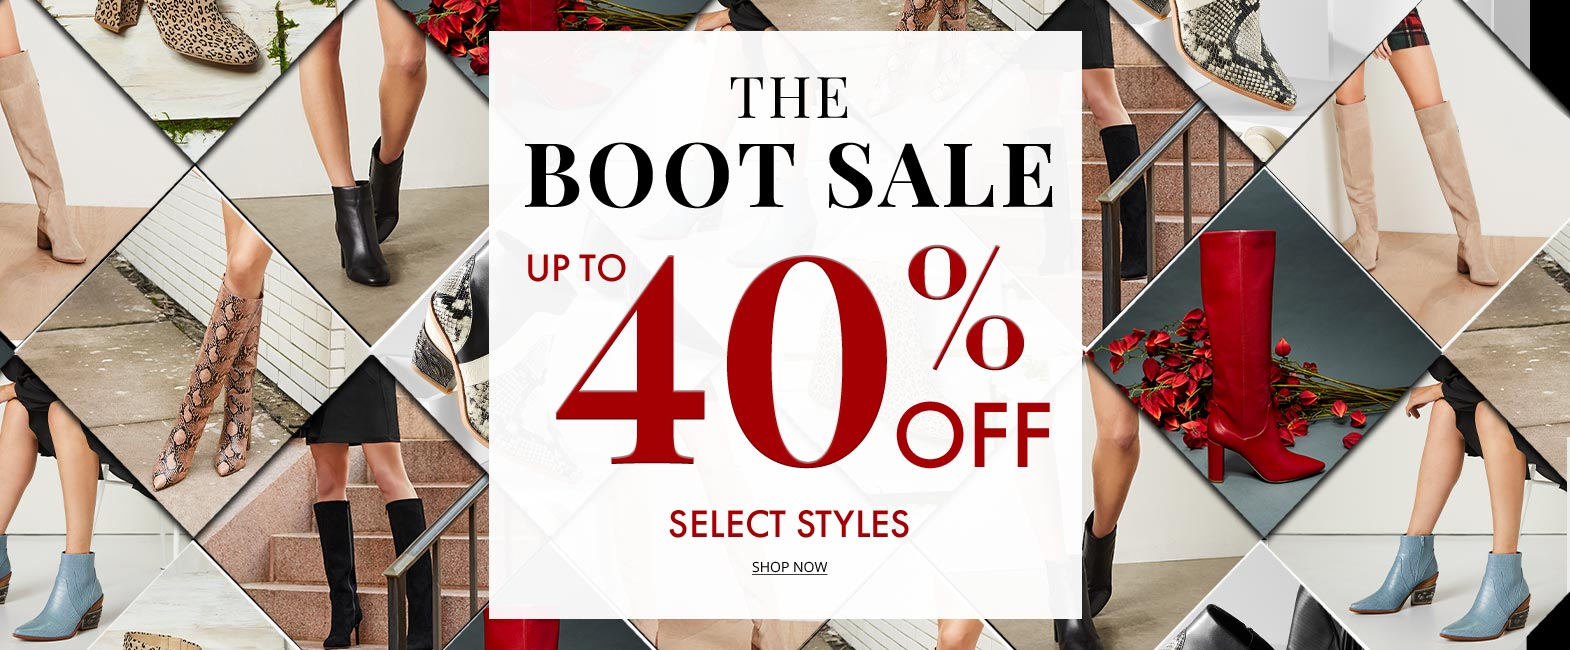 Shop up to 40% off Select Styles on Boots- Shop Now